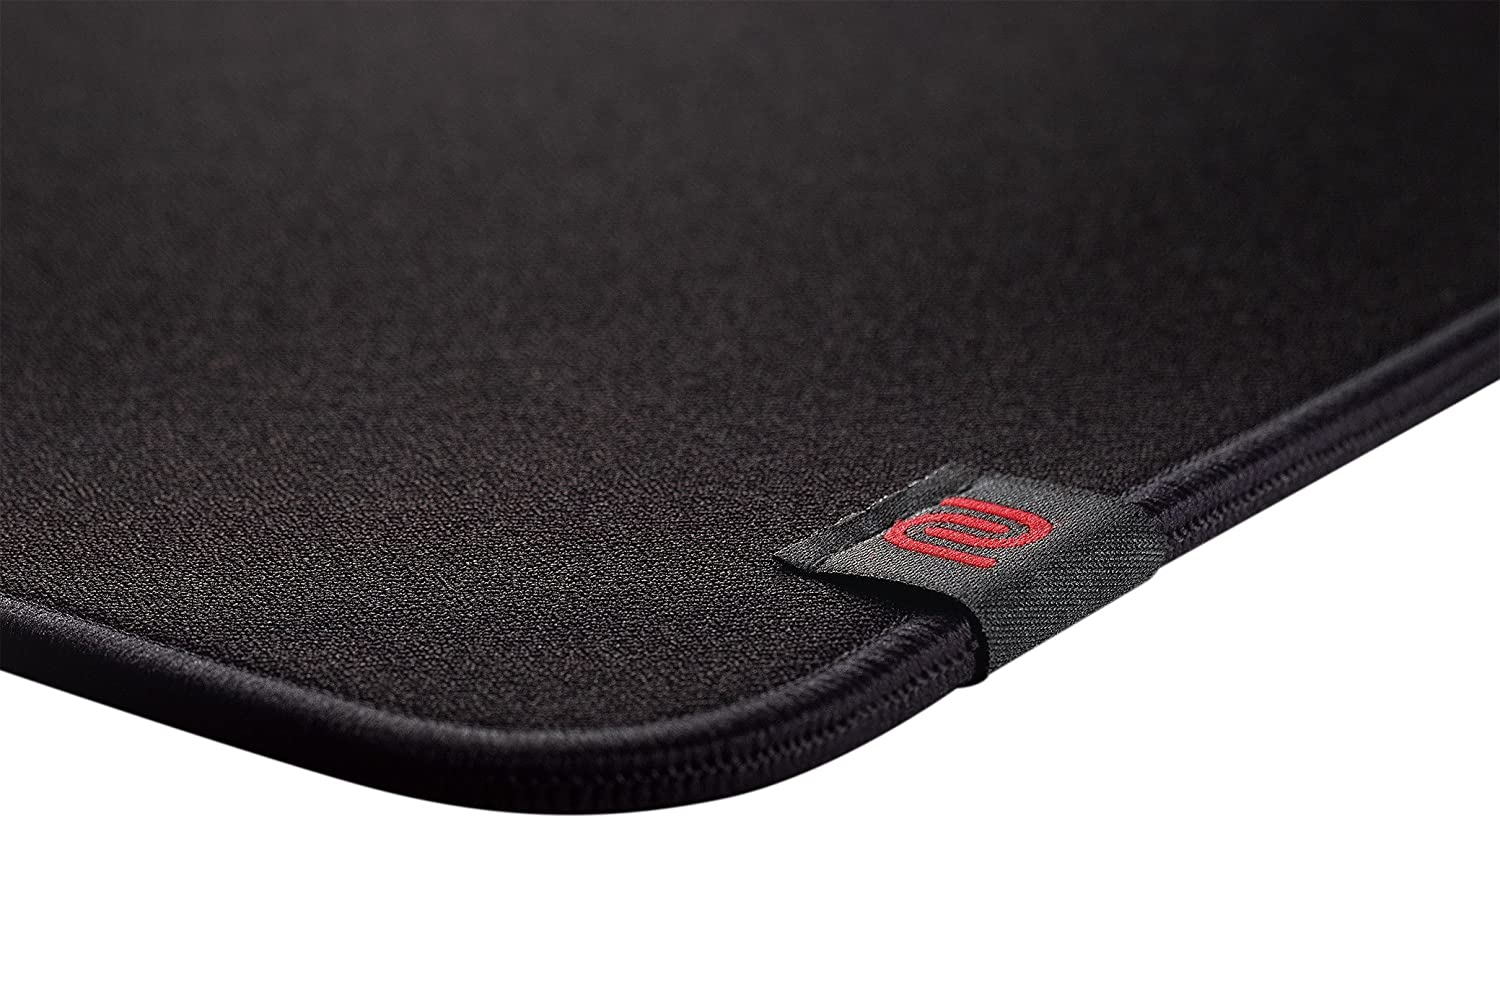 BenQ ZOWIE GTF-X Large Competitive Gaming Mouse Pad